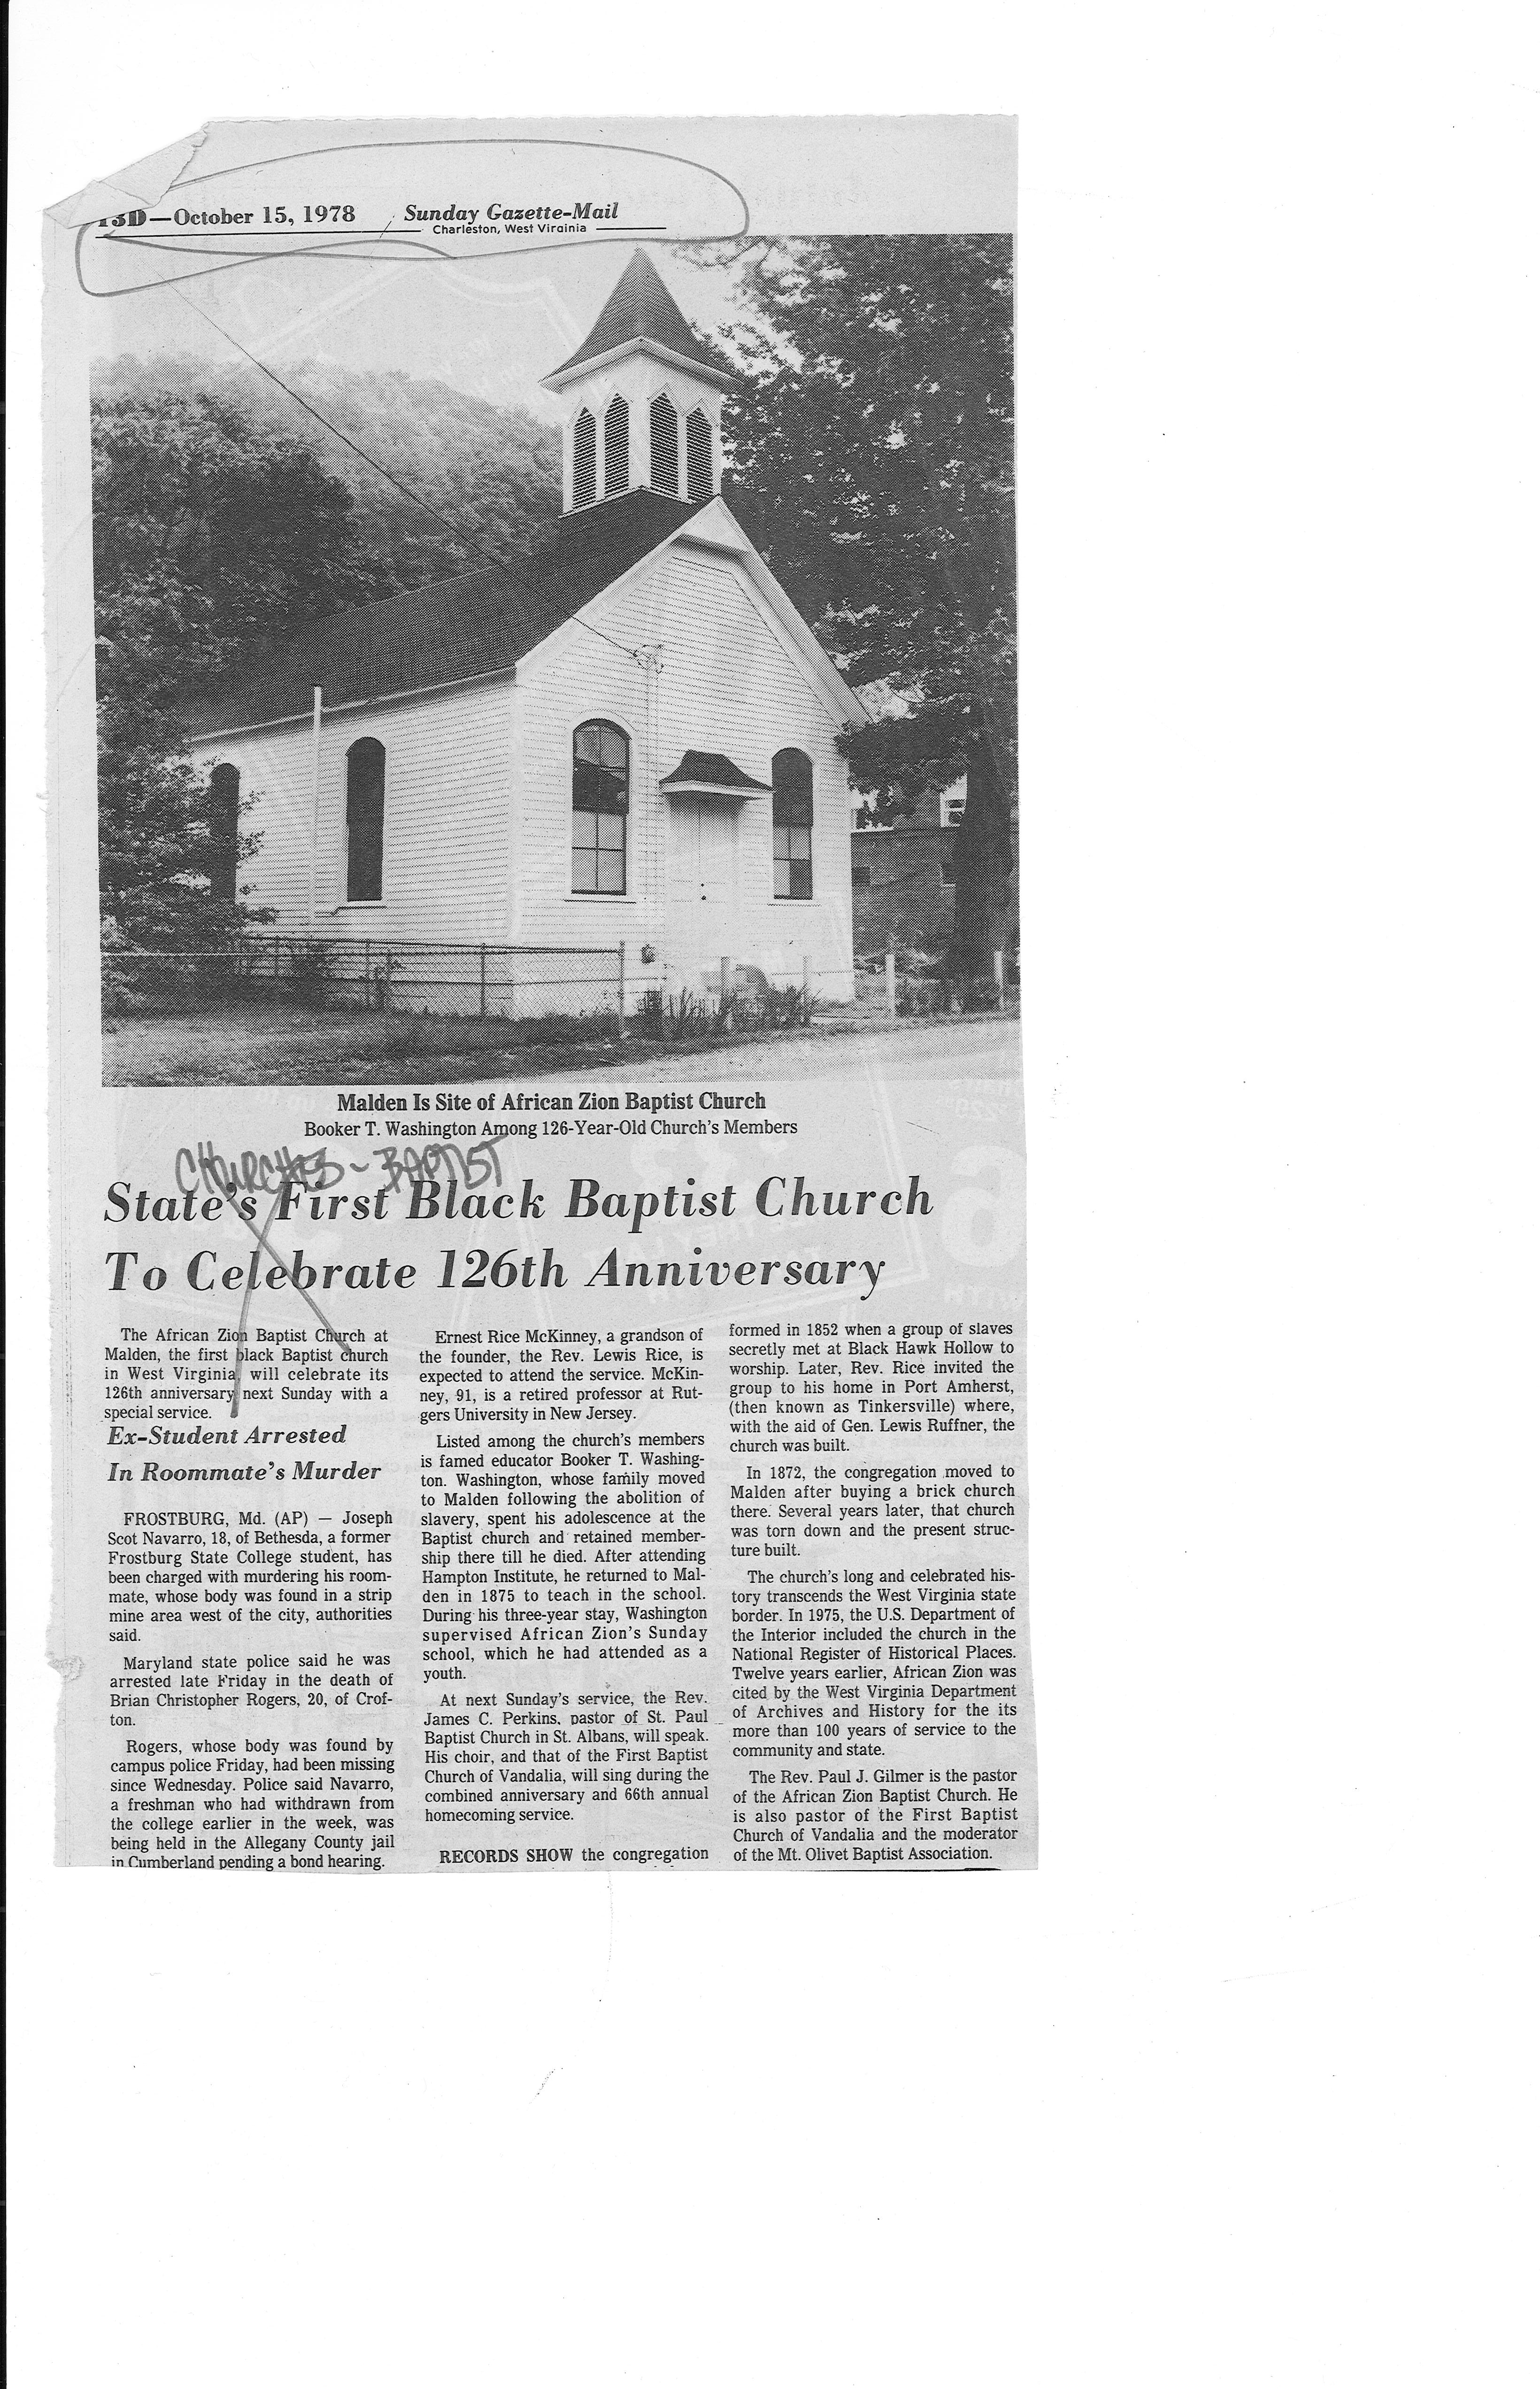 1978 article on church. Courtesy of Marshall Special Collections